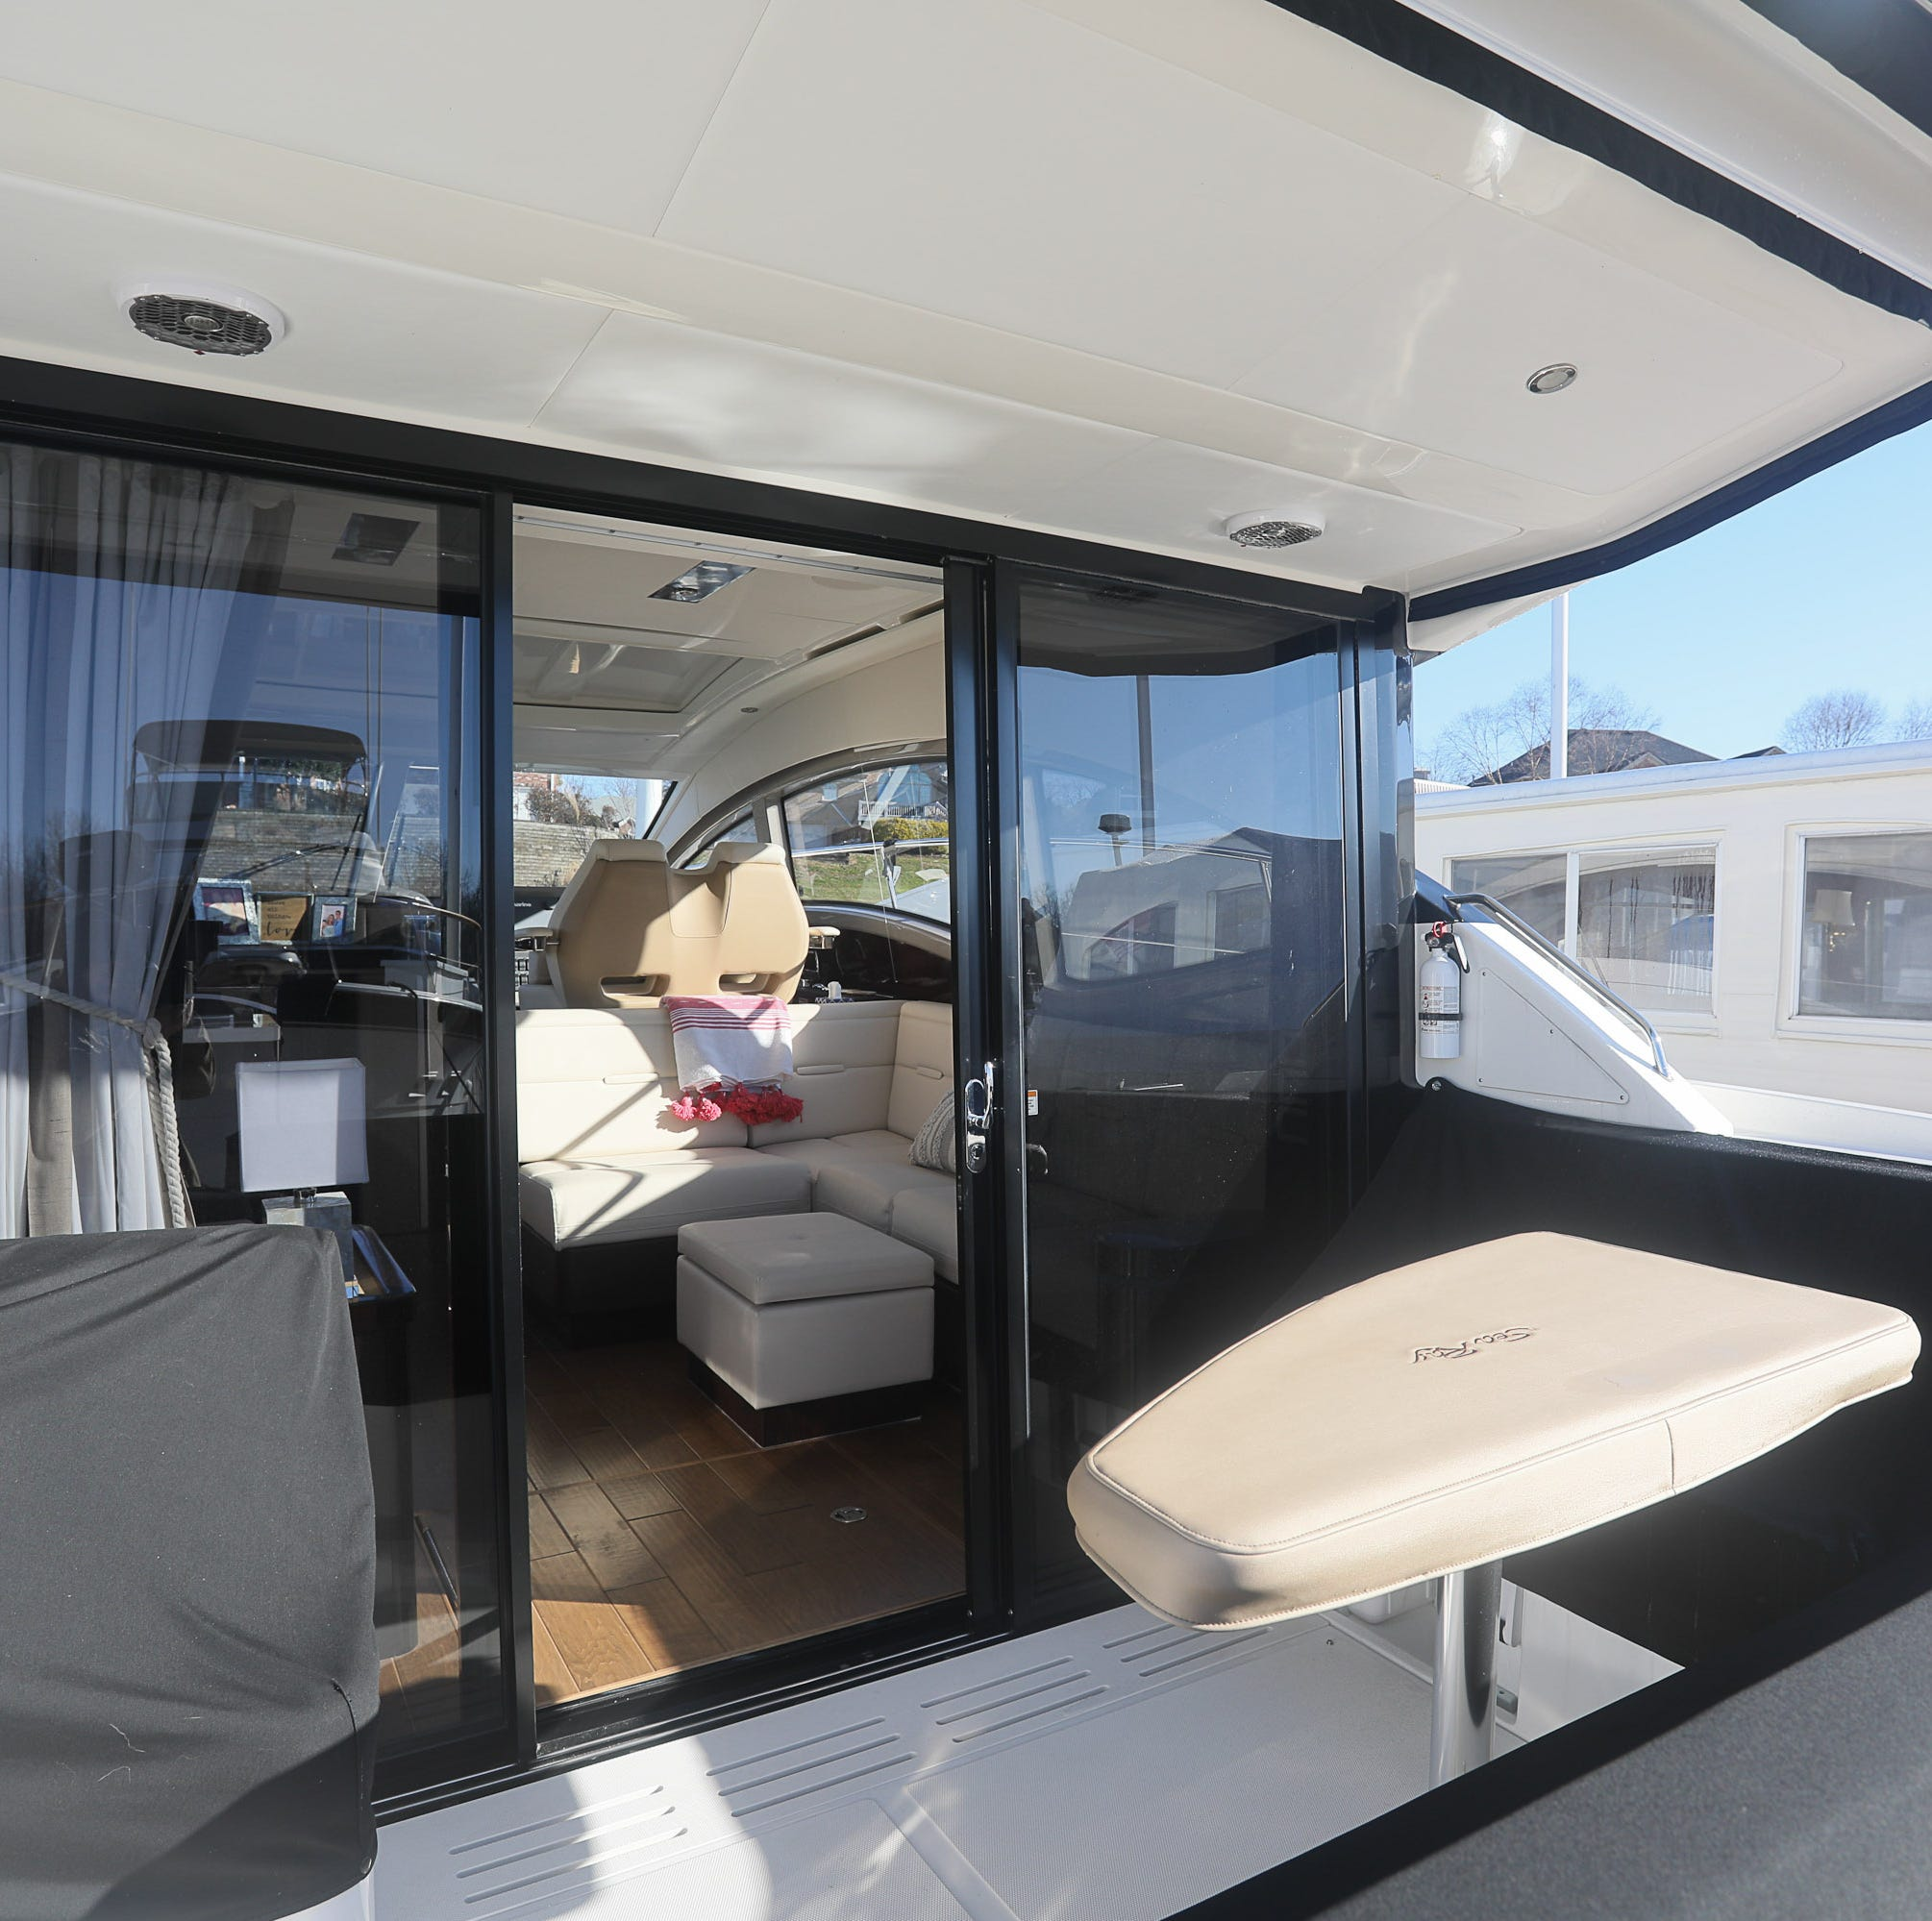 This luxurious Sea Ray 400 Sundancer is like a floating condo